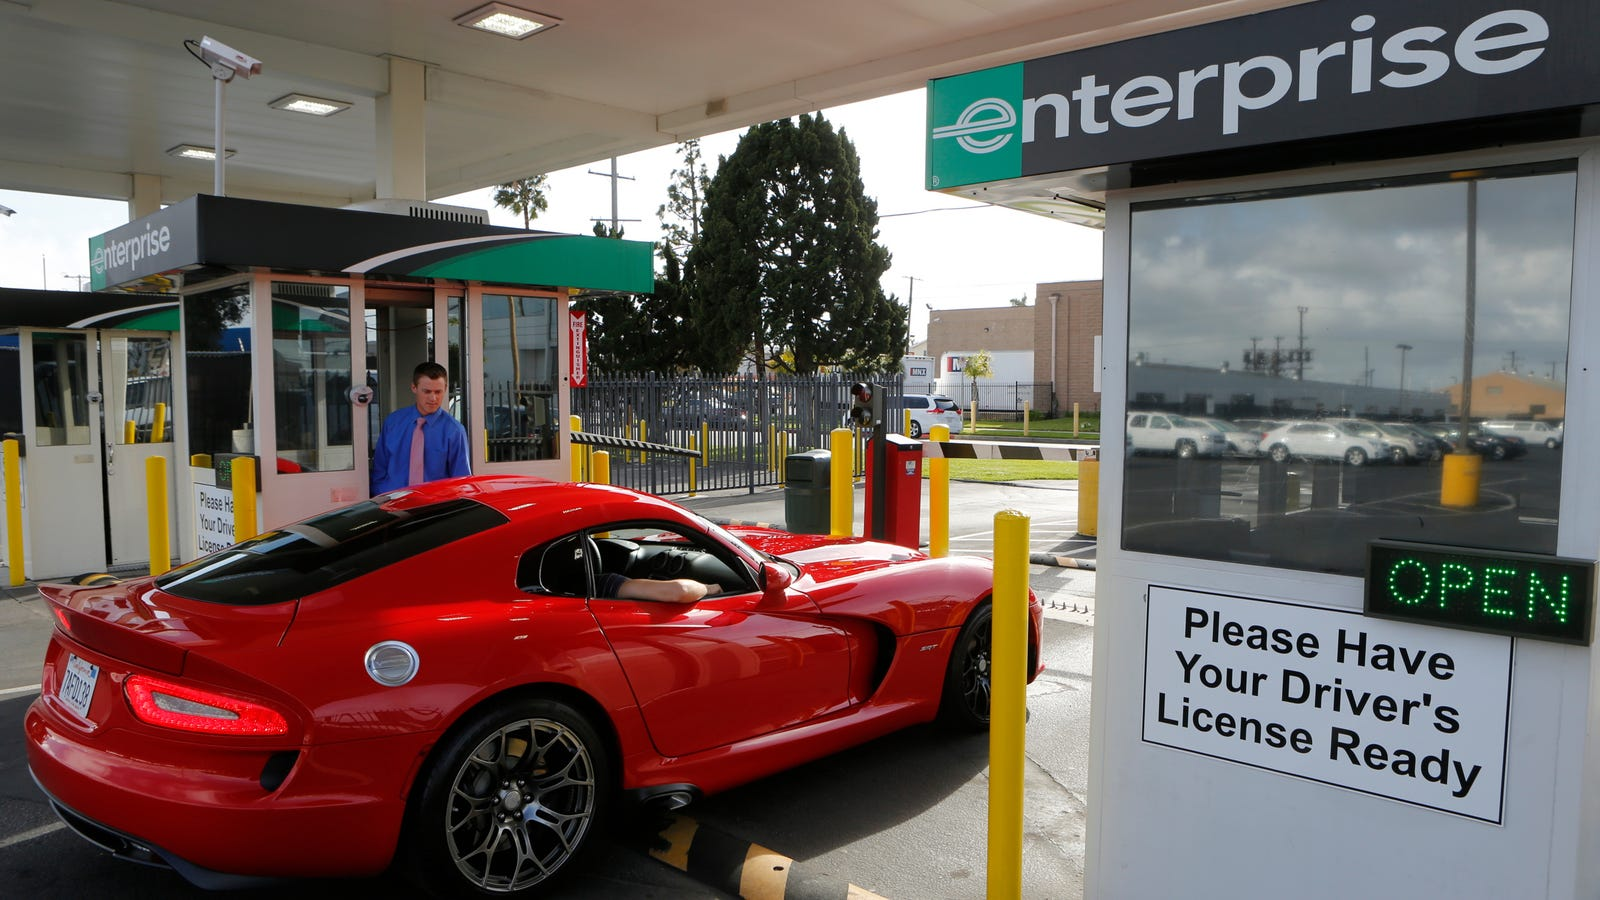 Enterprise Car Rental Company Ends Discount For NRA Members